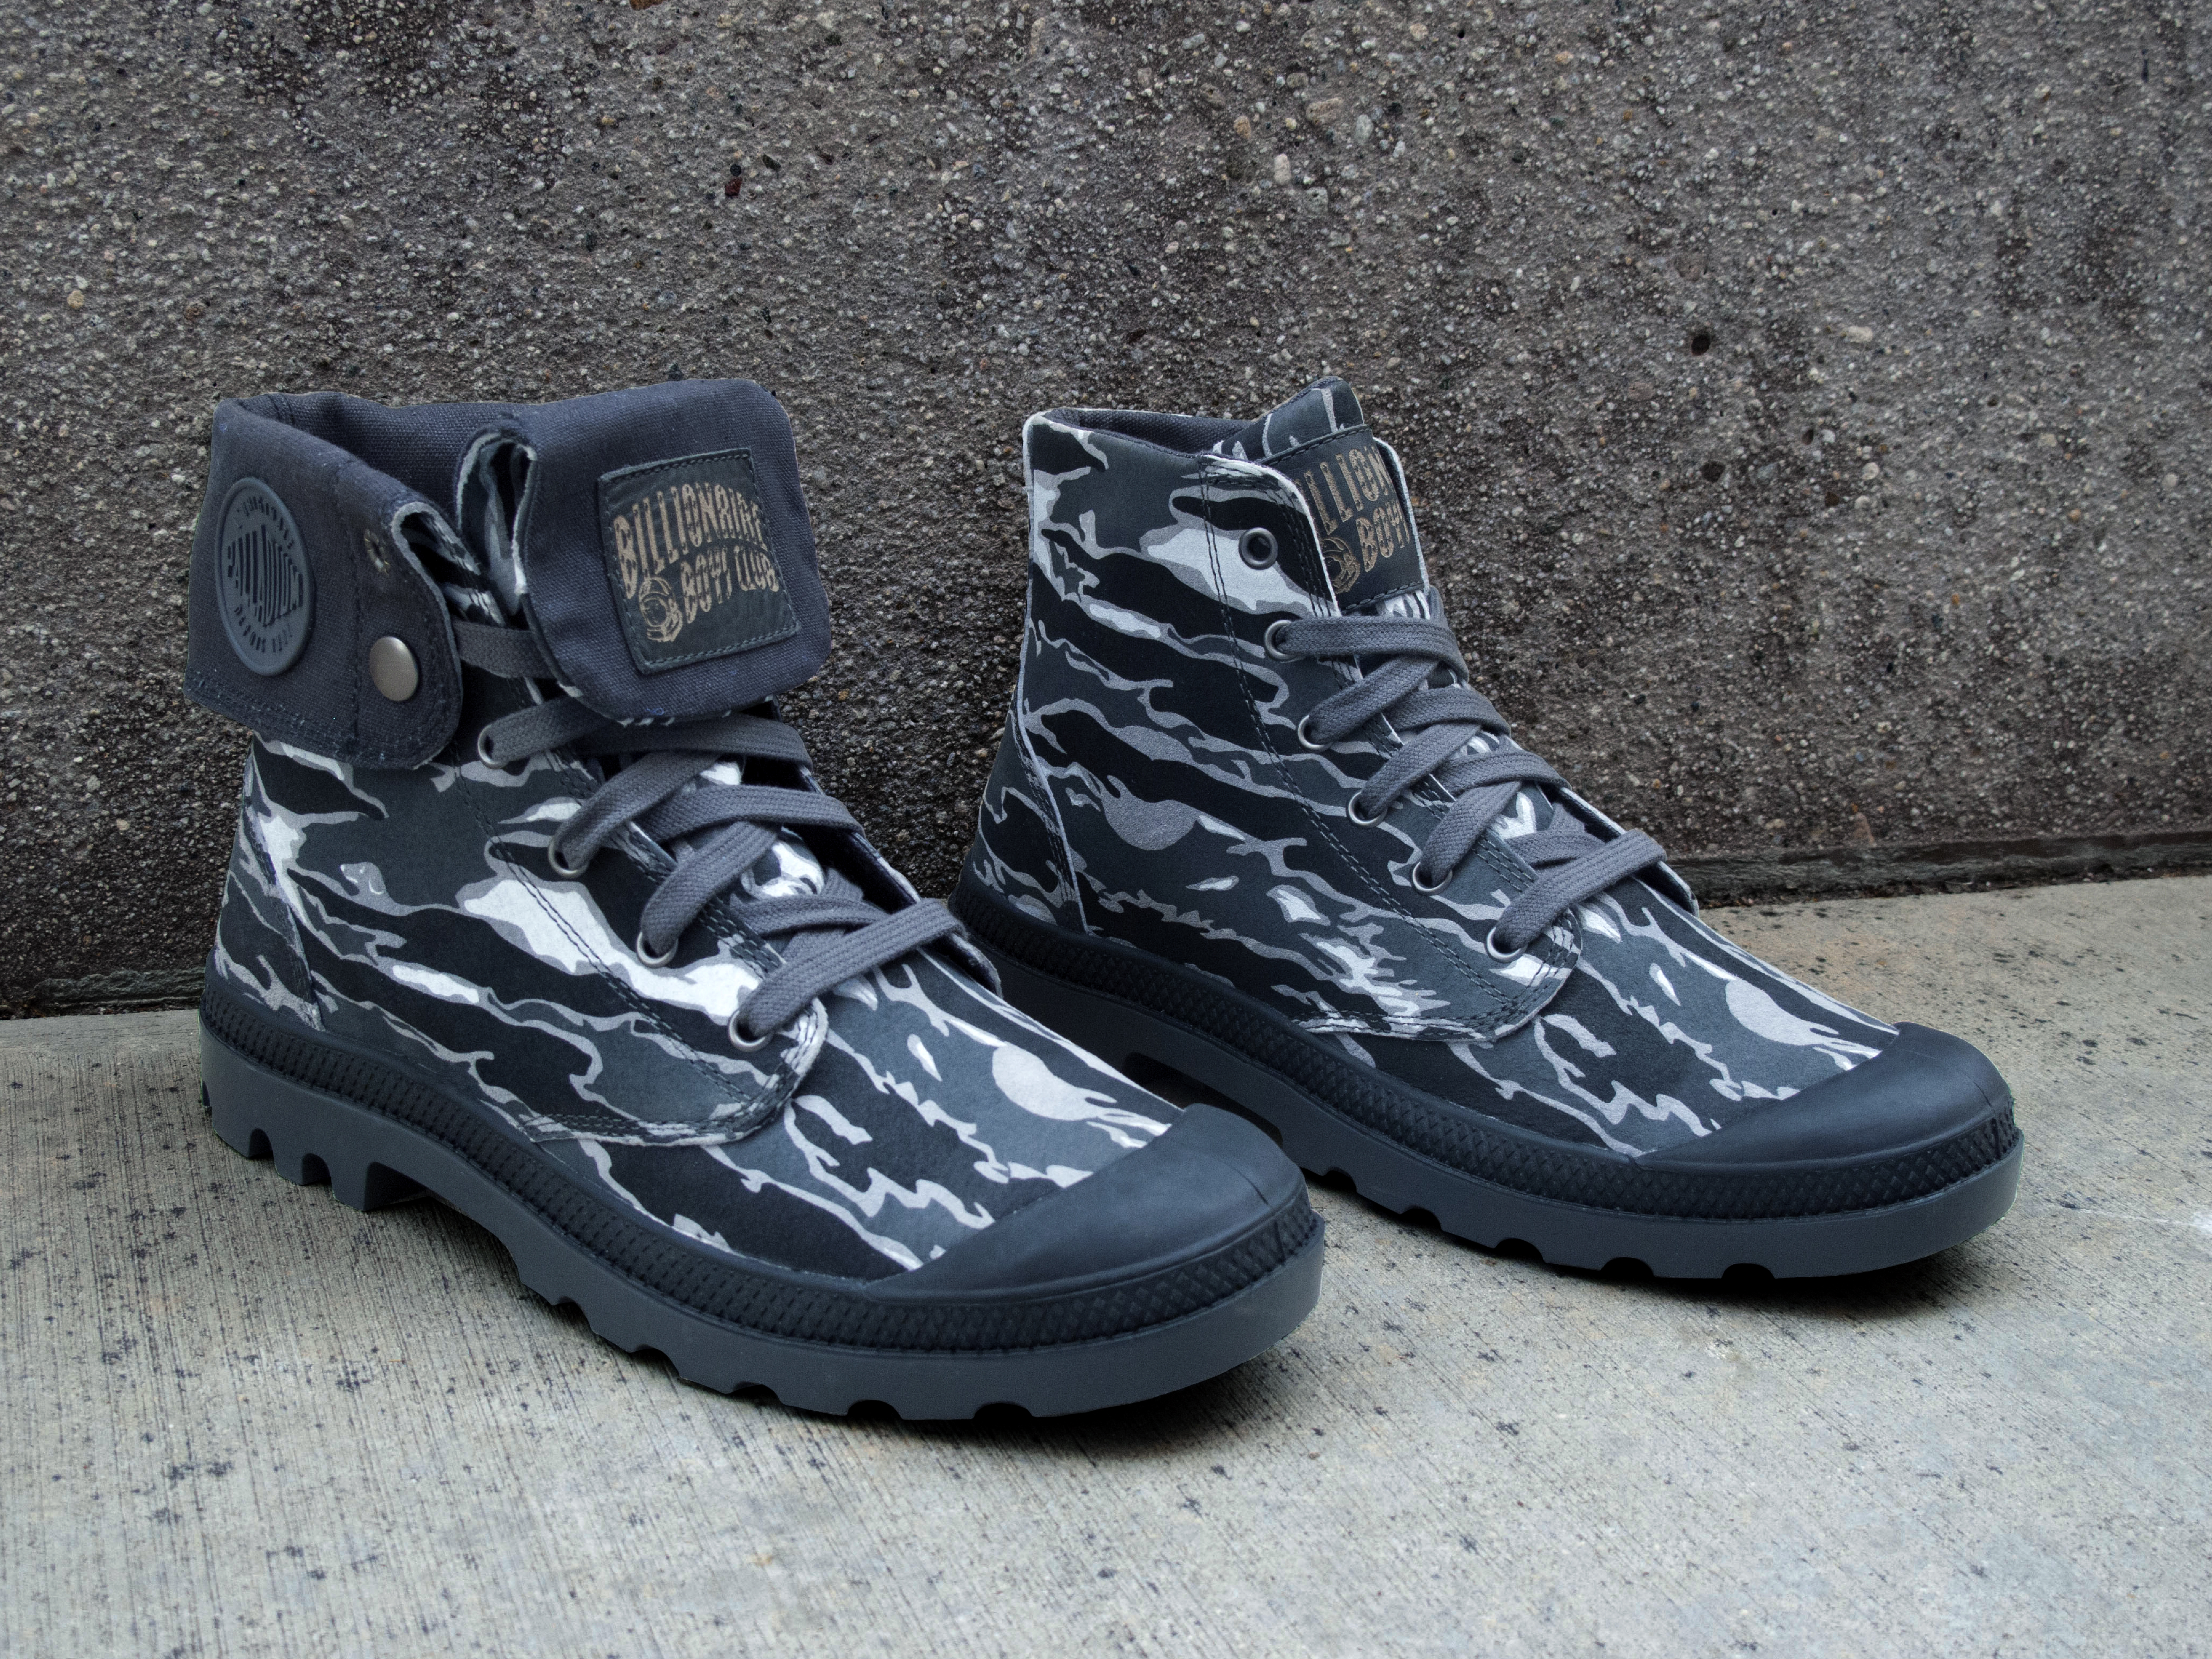 Discussion on this topic: Palladium x Billionaire Boys Club Boots, palladium-x-billionaire-boys-club-boots/